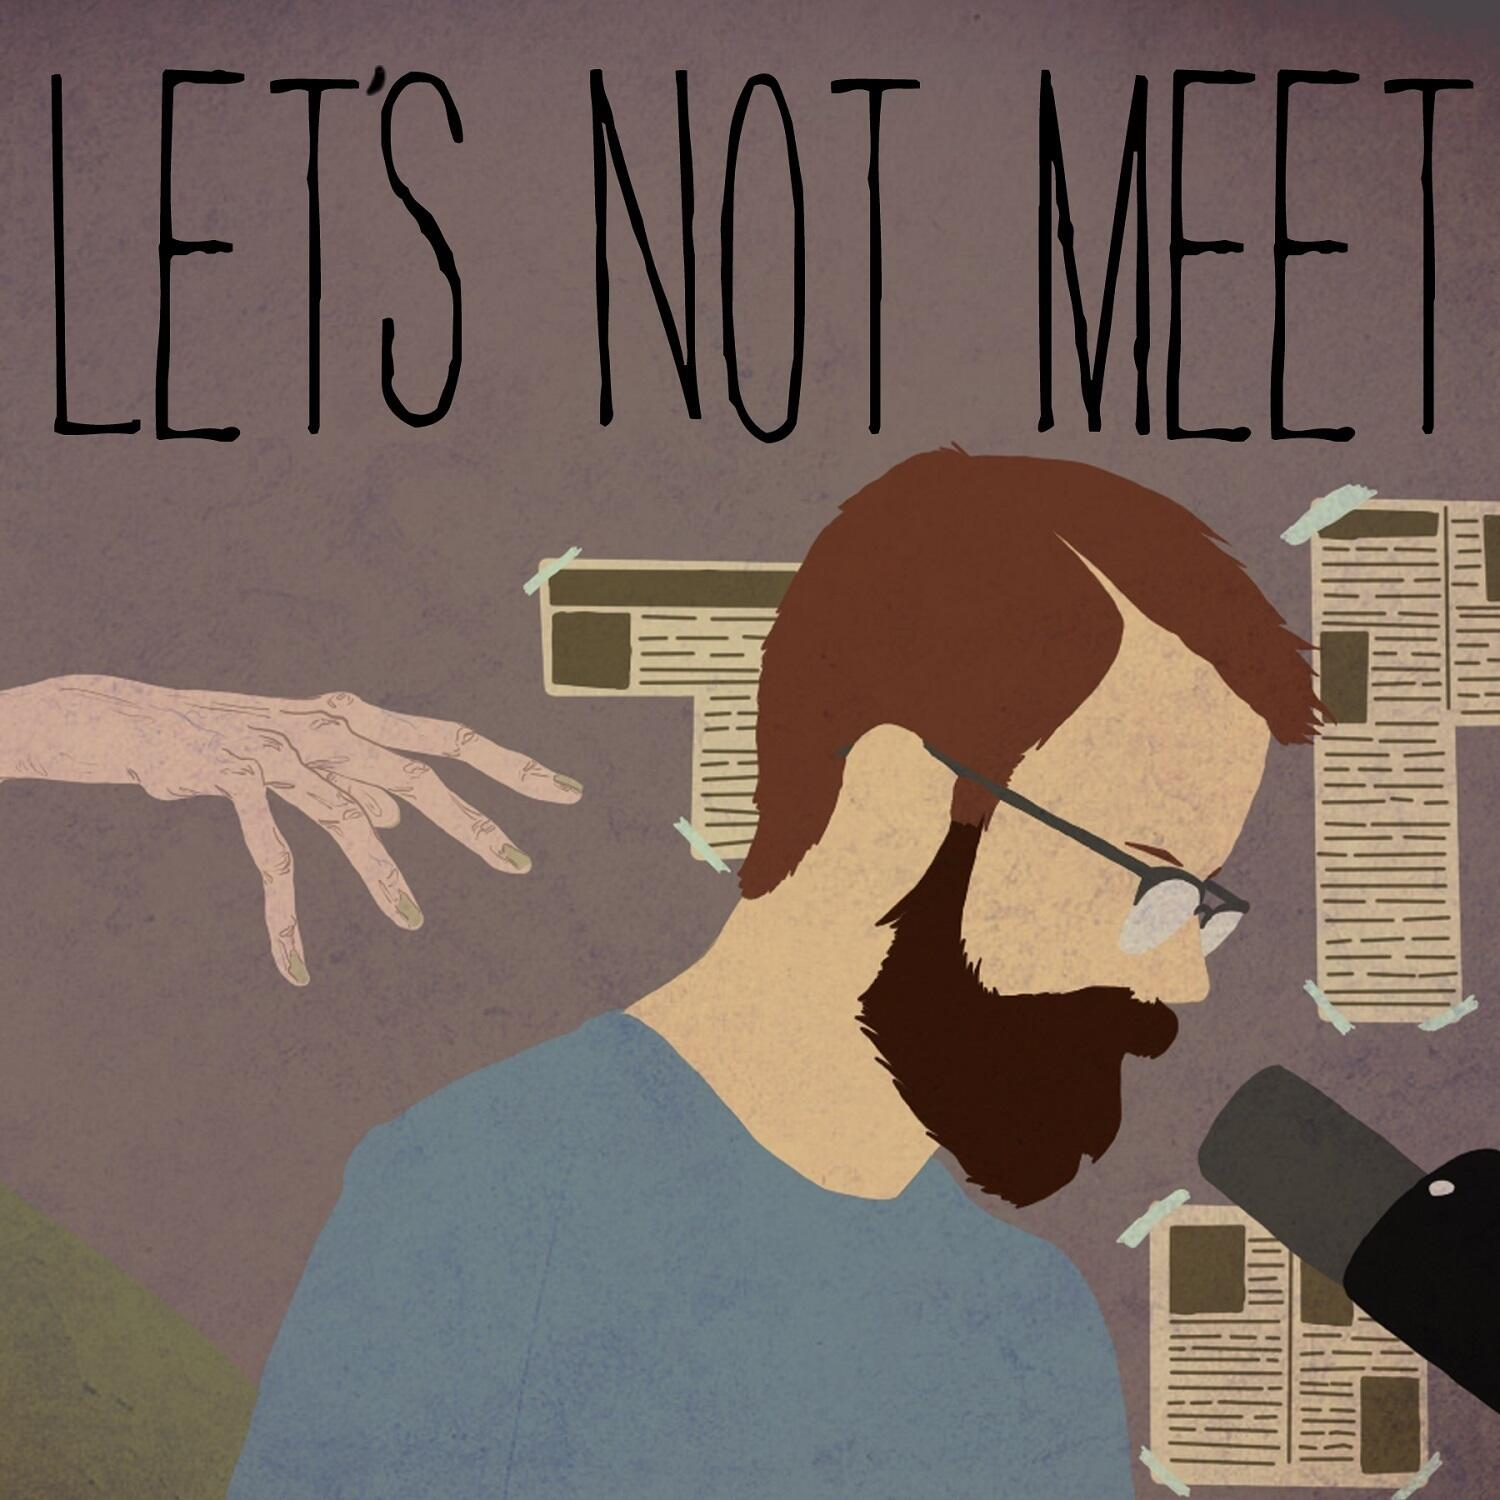 4x14: The Trucker - Let's Not Meet (Feat. Chioke Ianson)